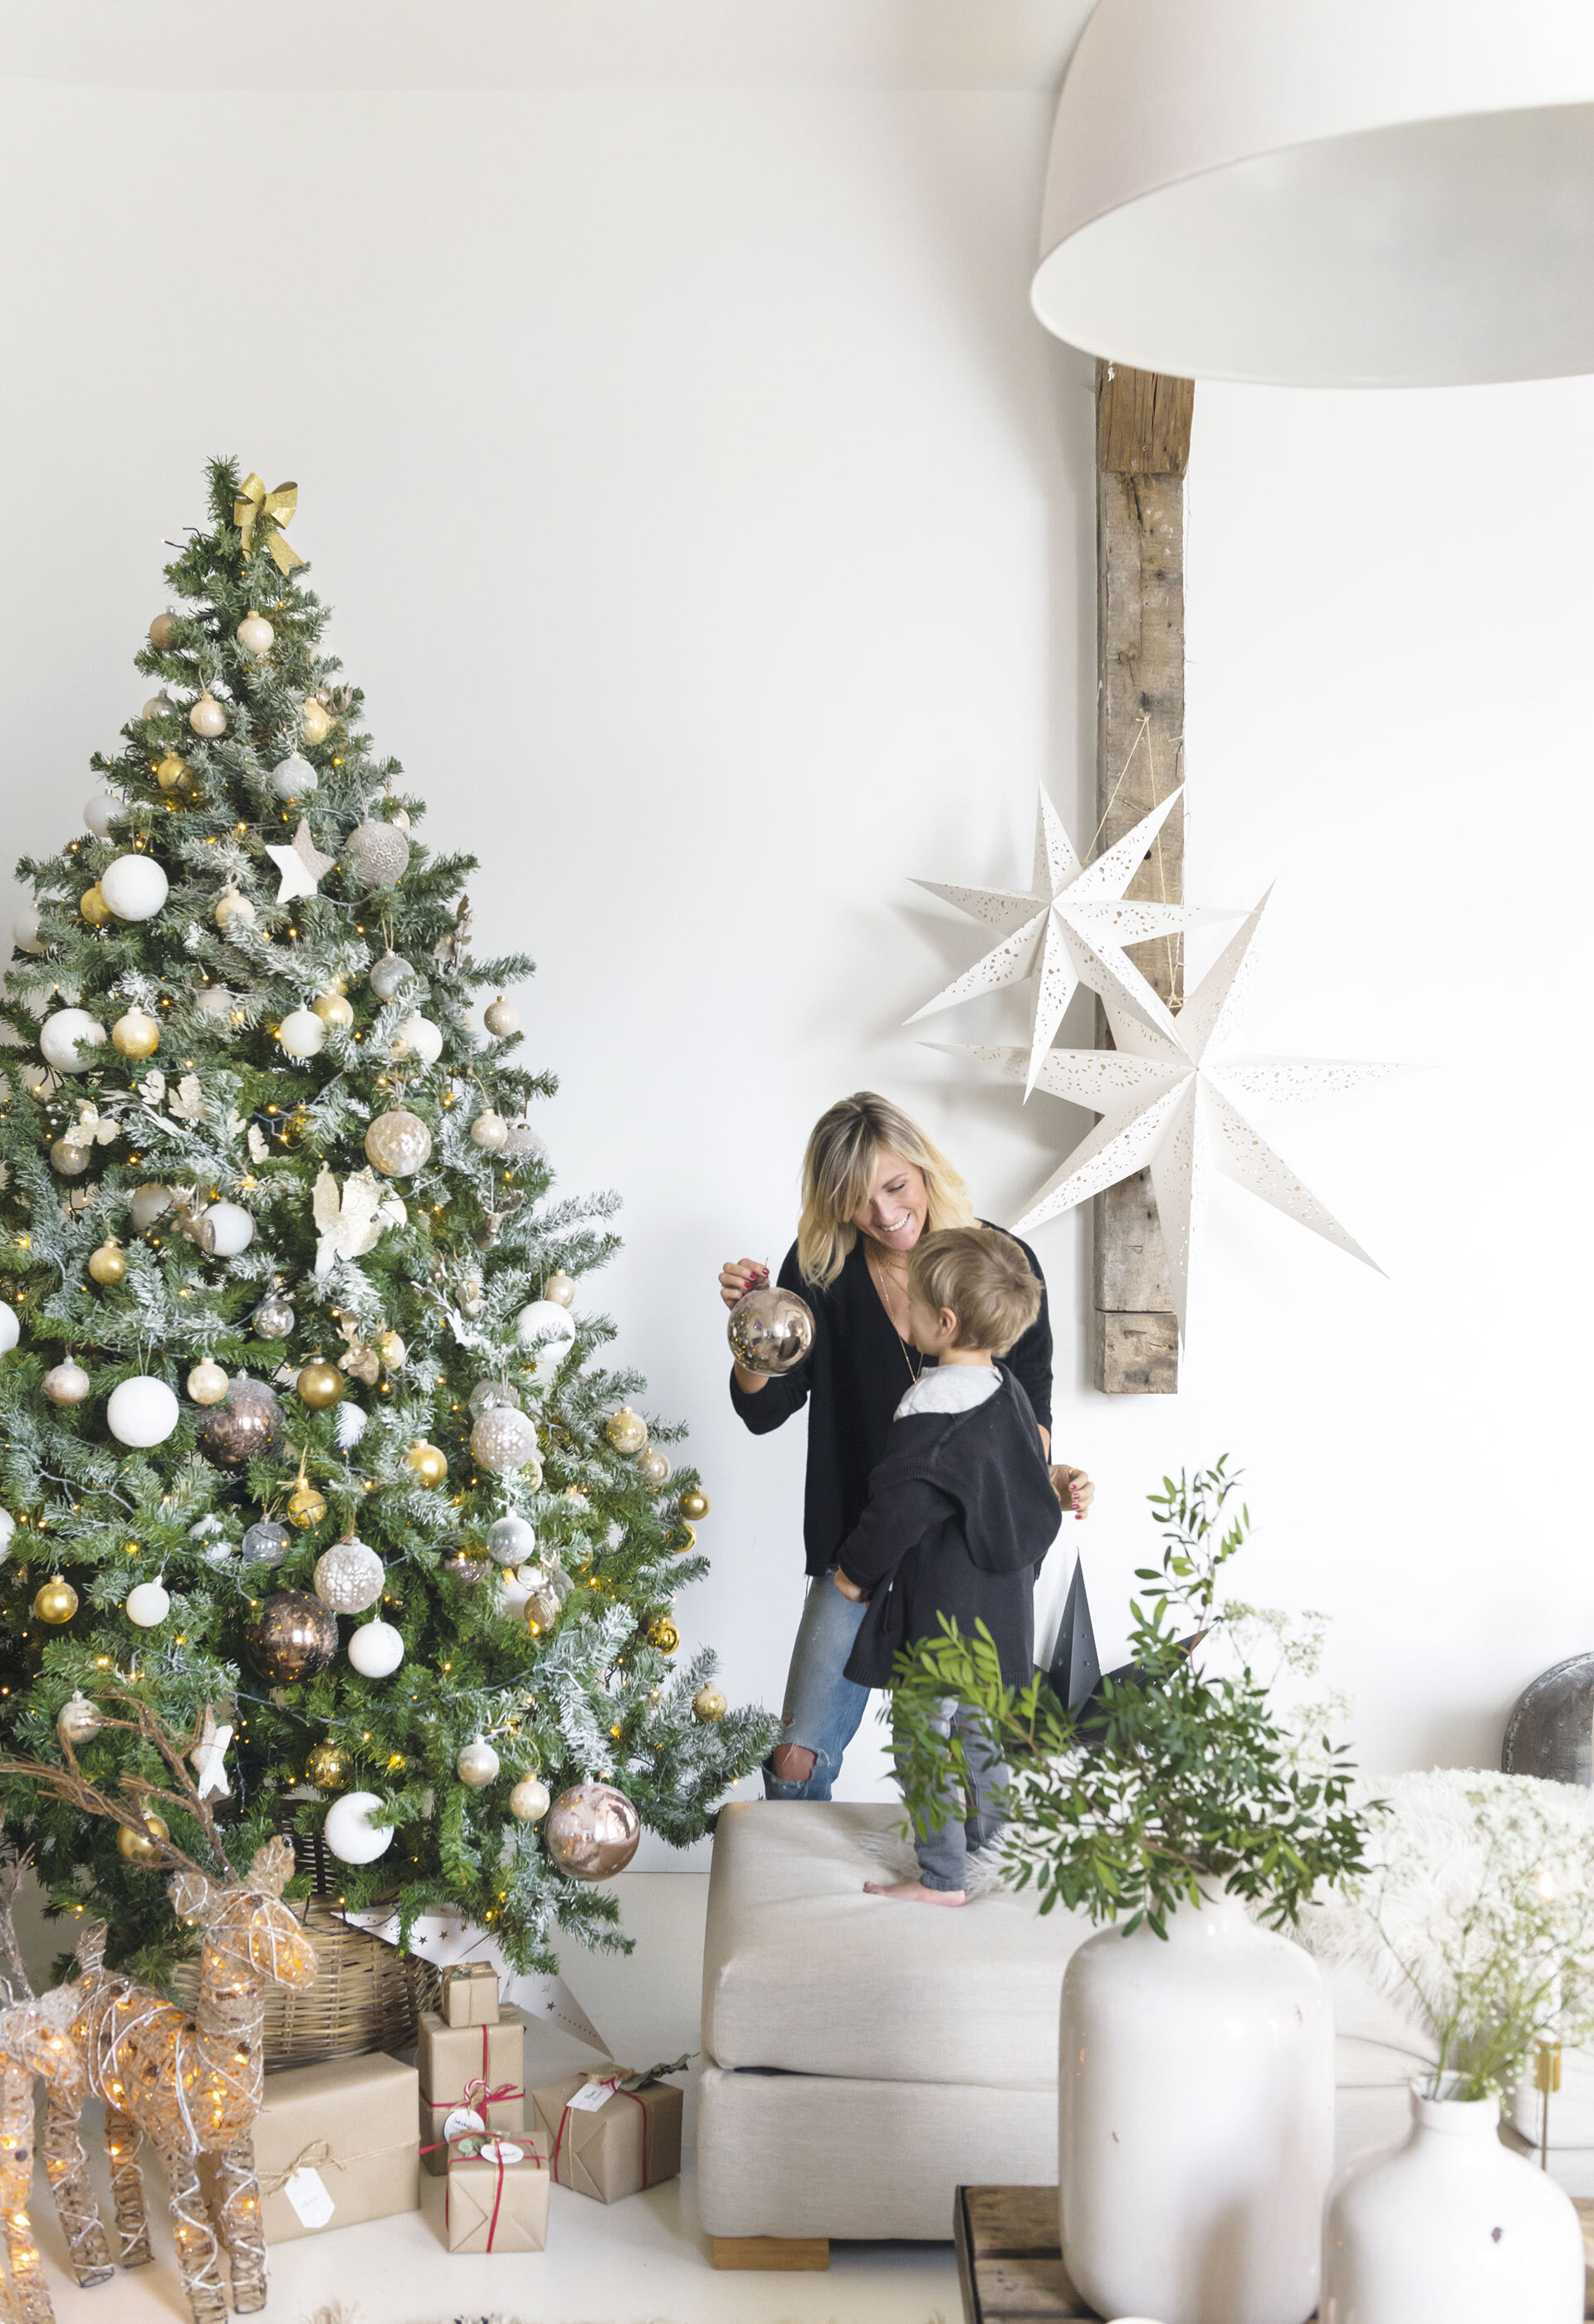 Christmas Decor In A Rustic French Barn Home The Nordroom